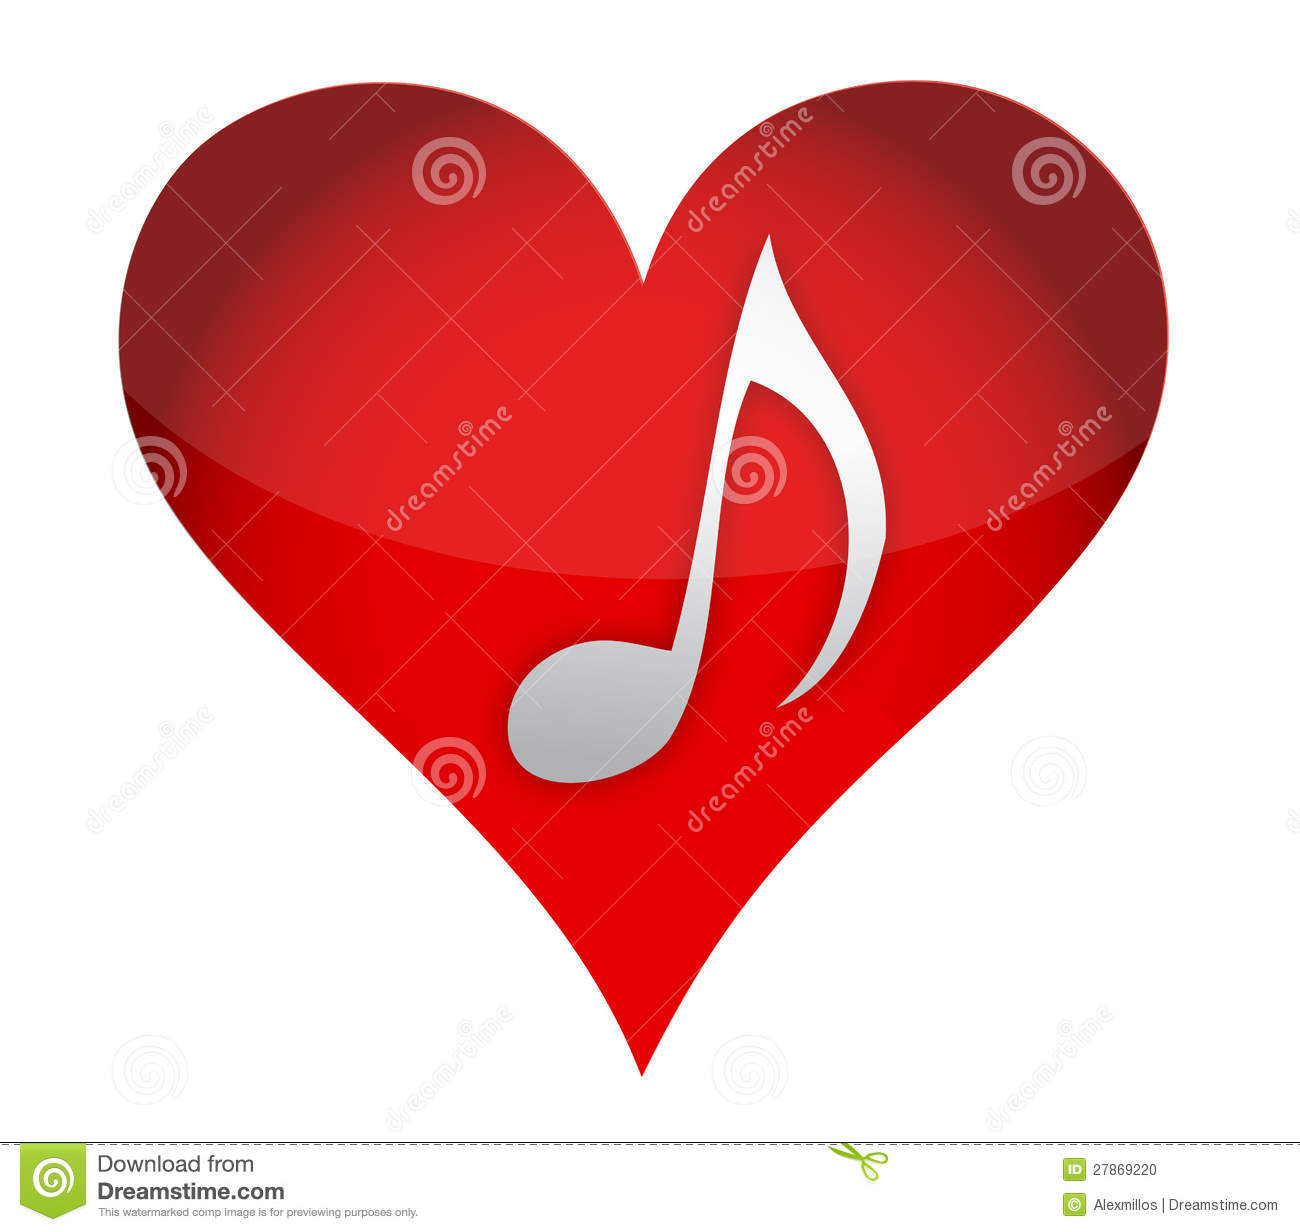 Heart in music illustration design over a white background.